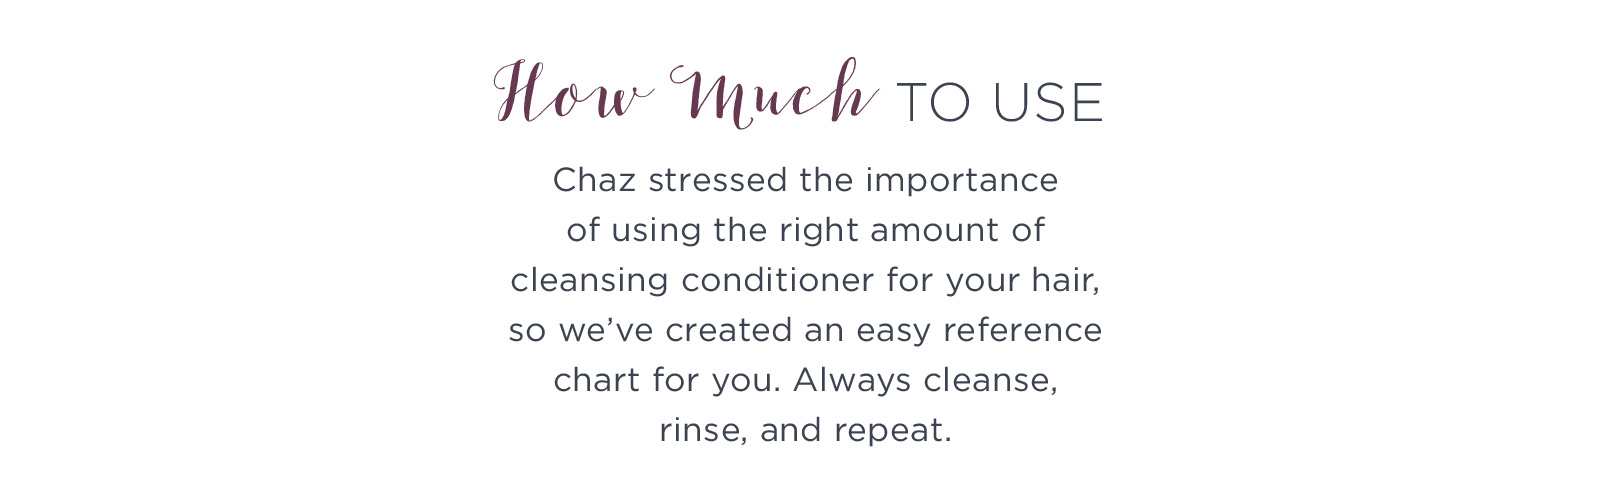 How Much To Use. Chaz stressed the importance of using the right amount of cleansing conditioner for your hair, so we've created an easy reference chart for you. Always cleanse, rinse, and repeat.